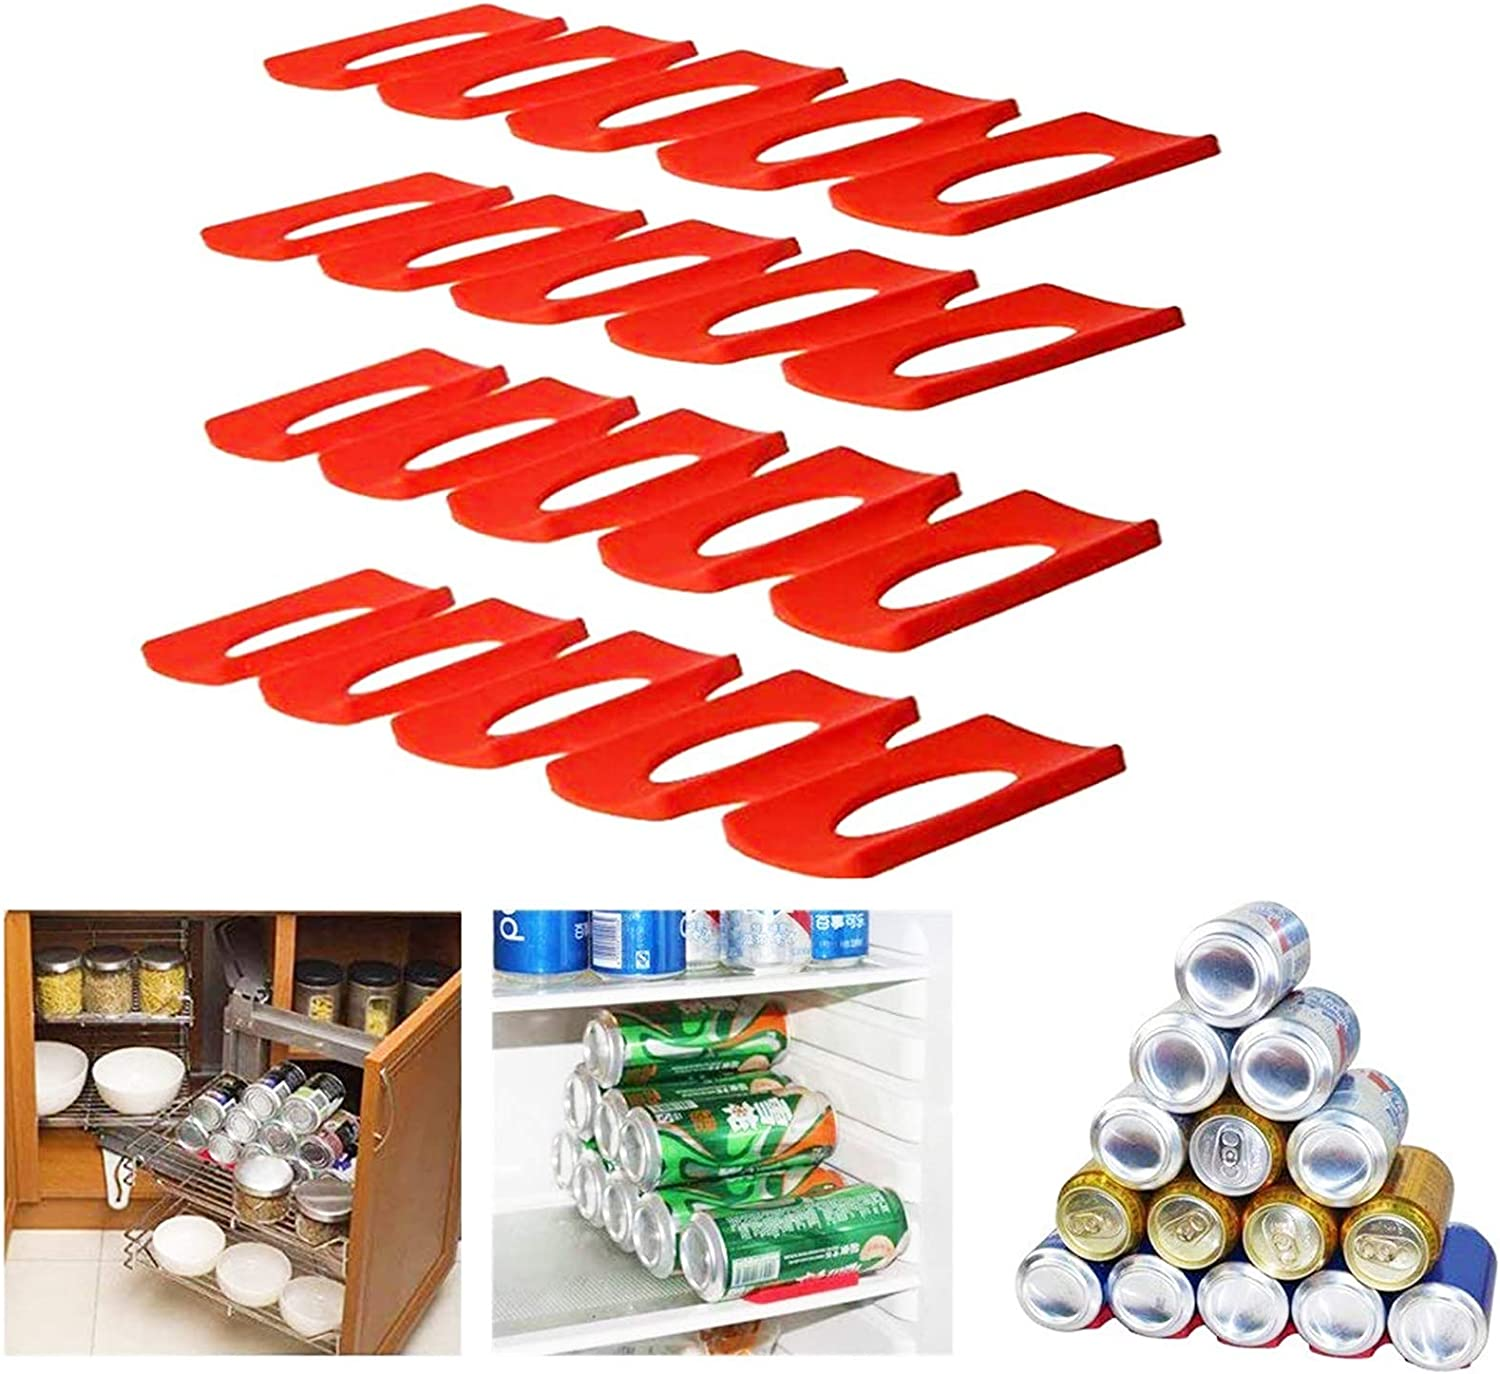 FashionMall 4 Pcs Foldable Silicone Wine Stacker Set,Beer Can Rack Wine Bottle Holder for Refrigerator Cabinet (4 Pcs)